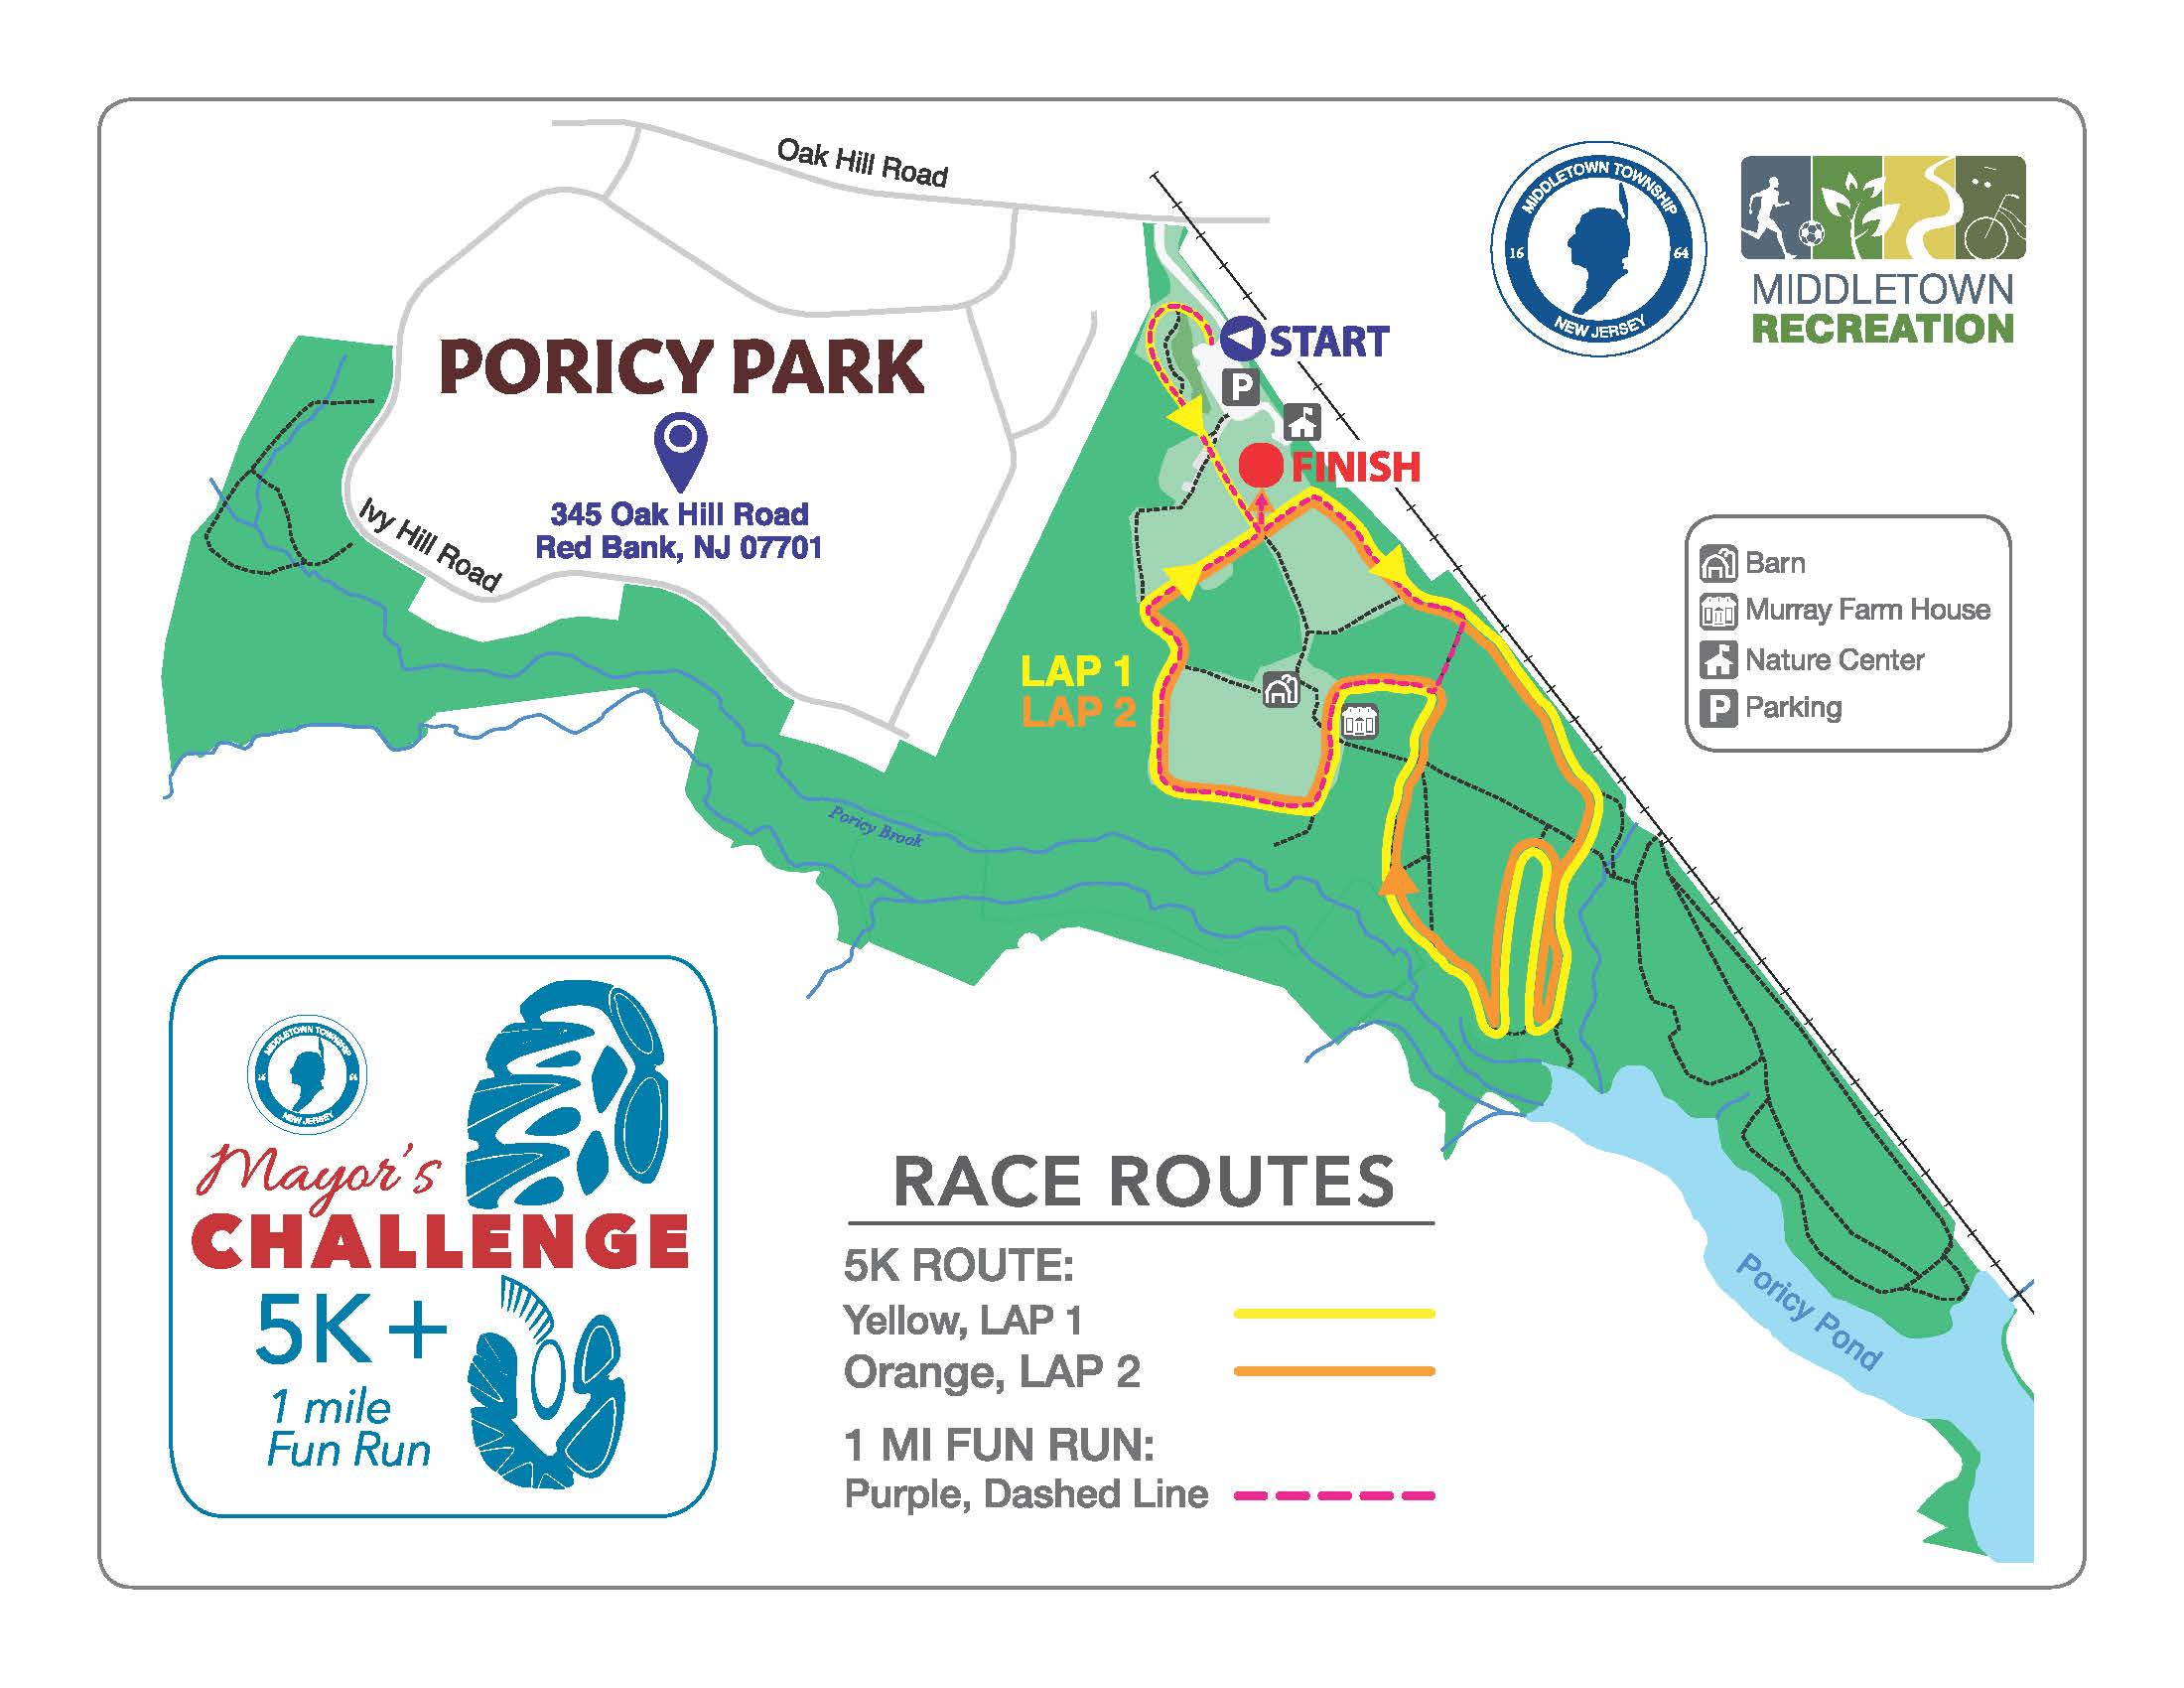 Mayor's Challenge Trail Map